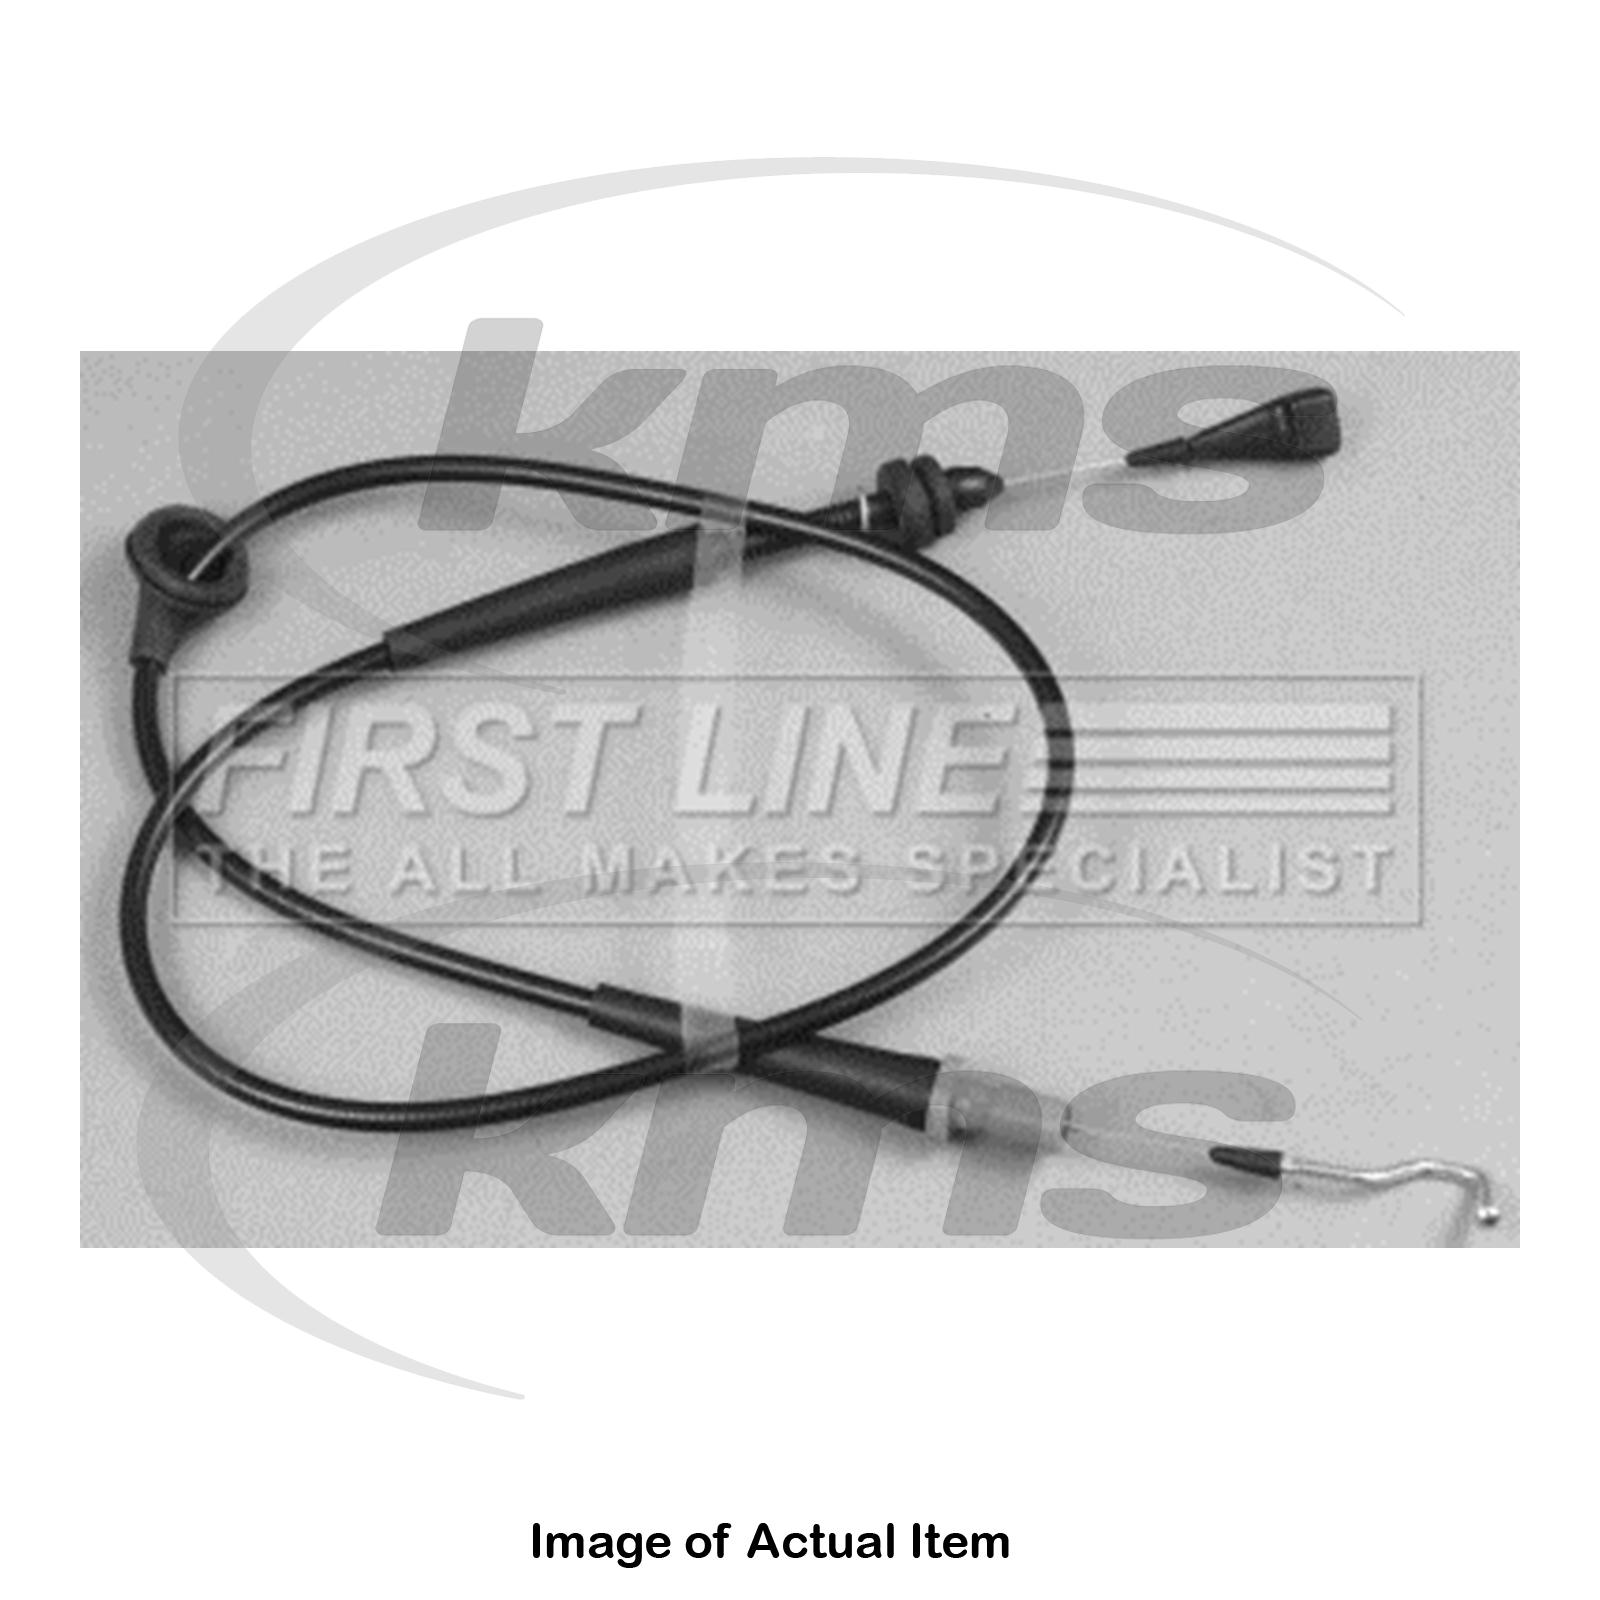 Firstline Accelerator Cable Part Number FKA1003